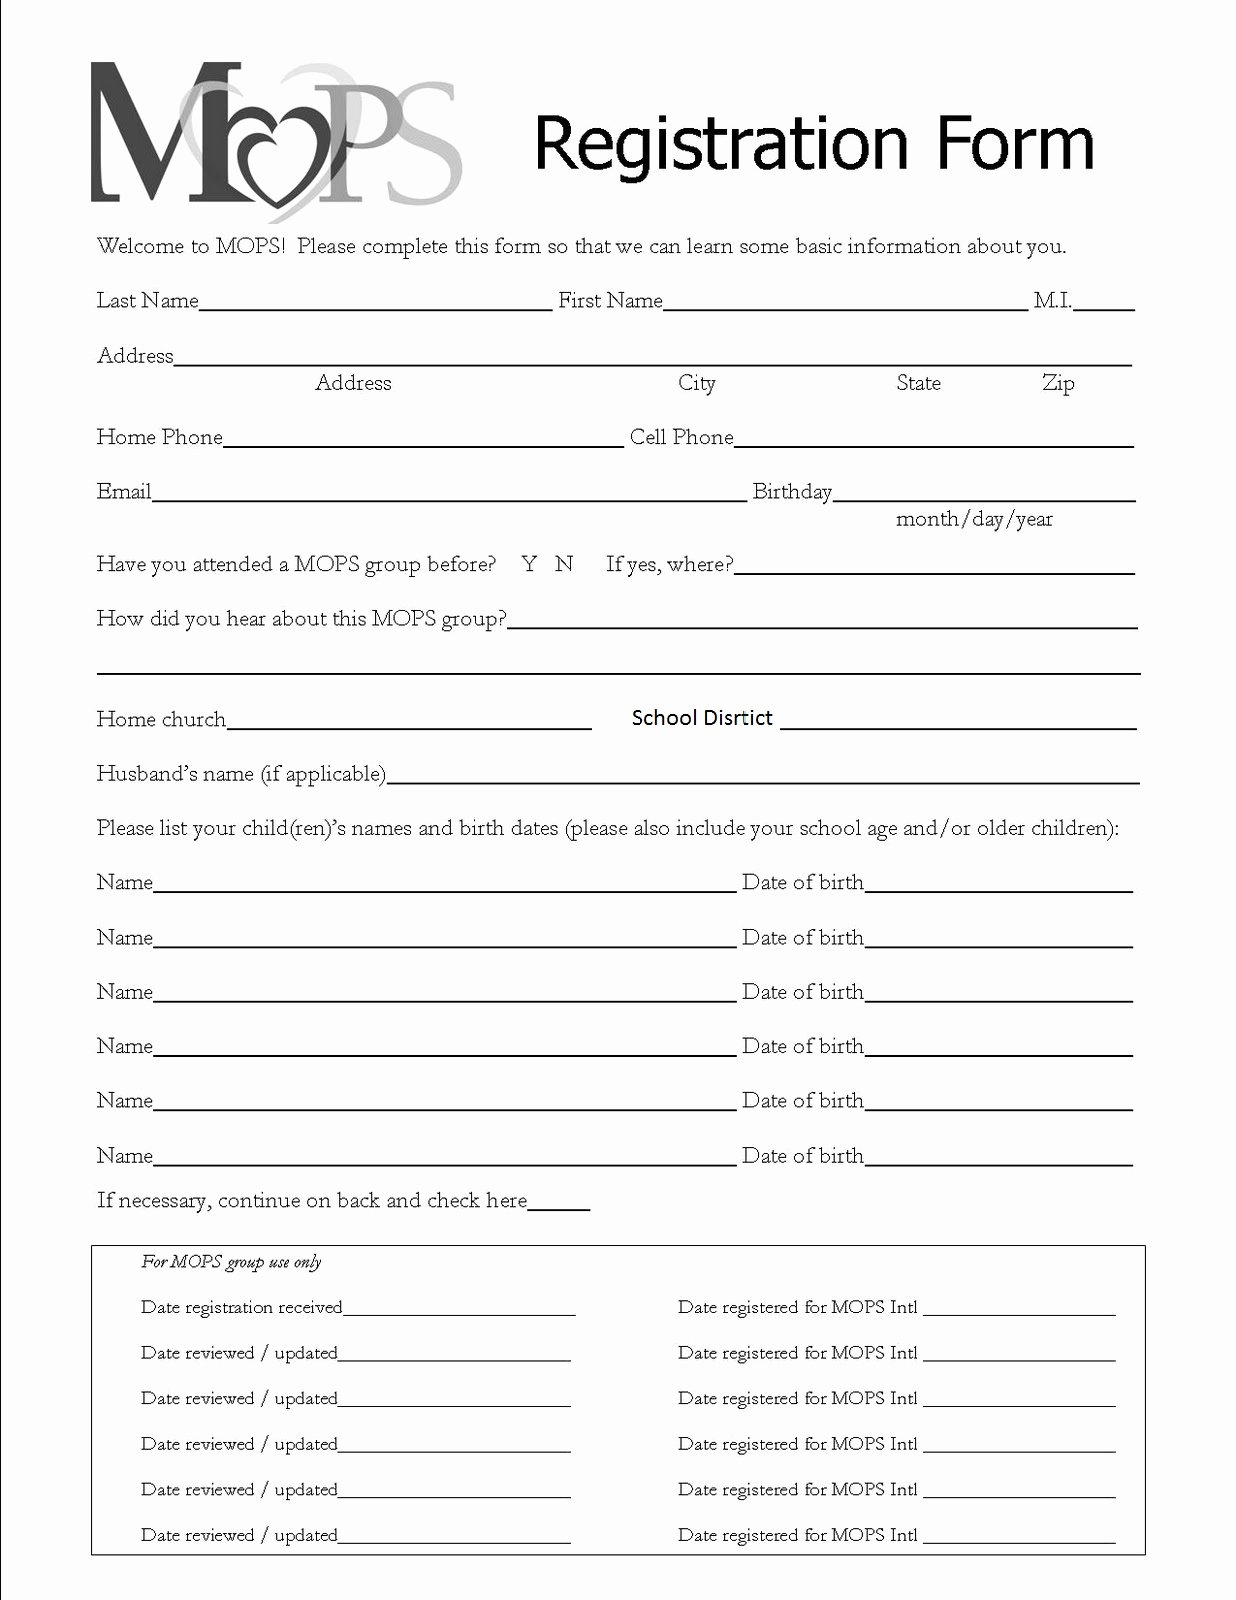 Printable Registration form Template Beautiful Mothers Of Preschoolers Chippewa Evangelical Free Church